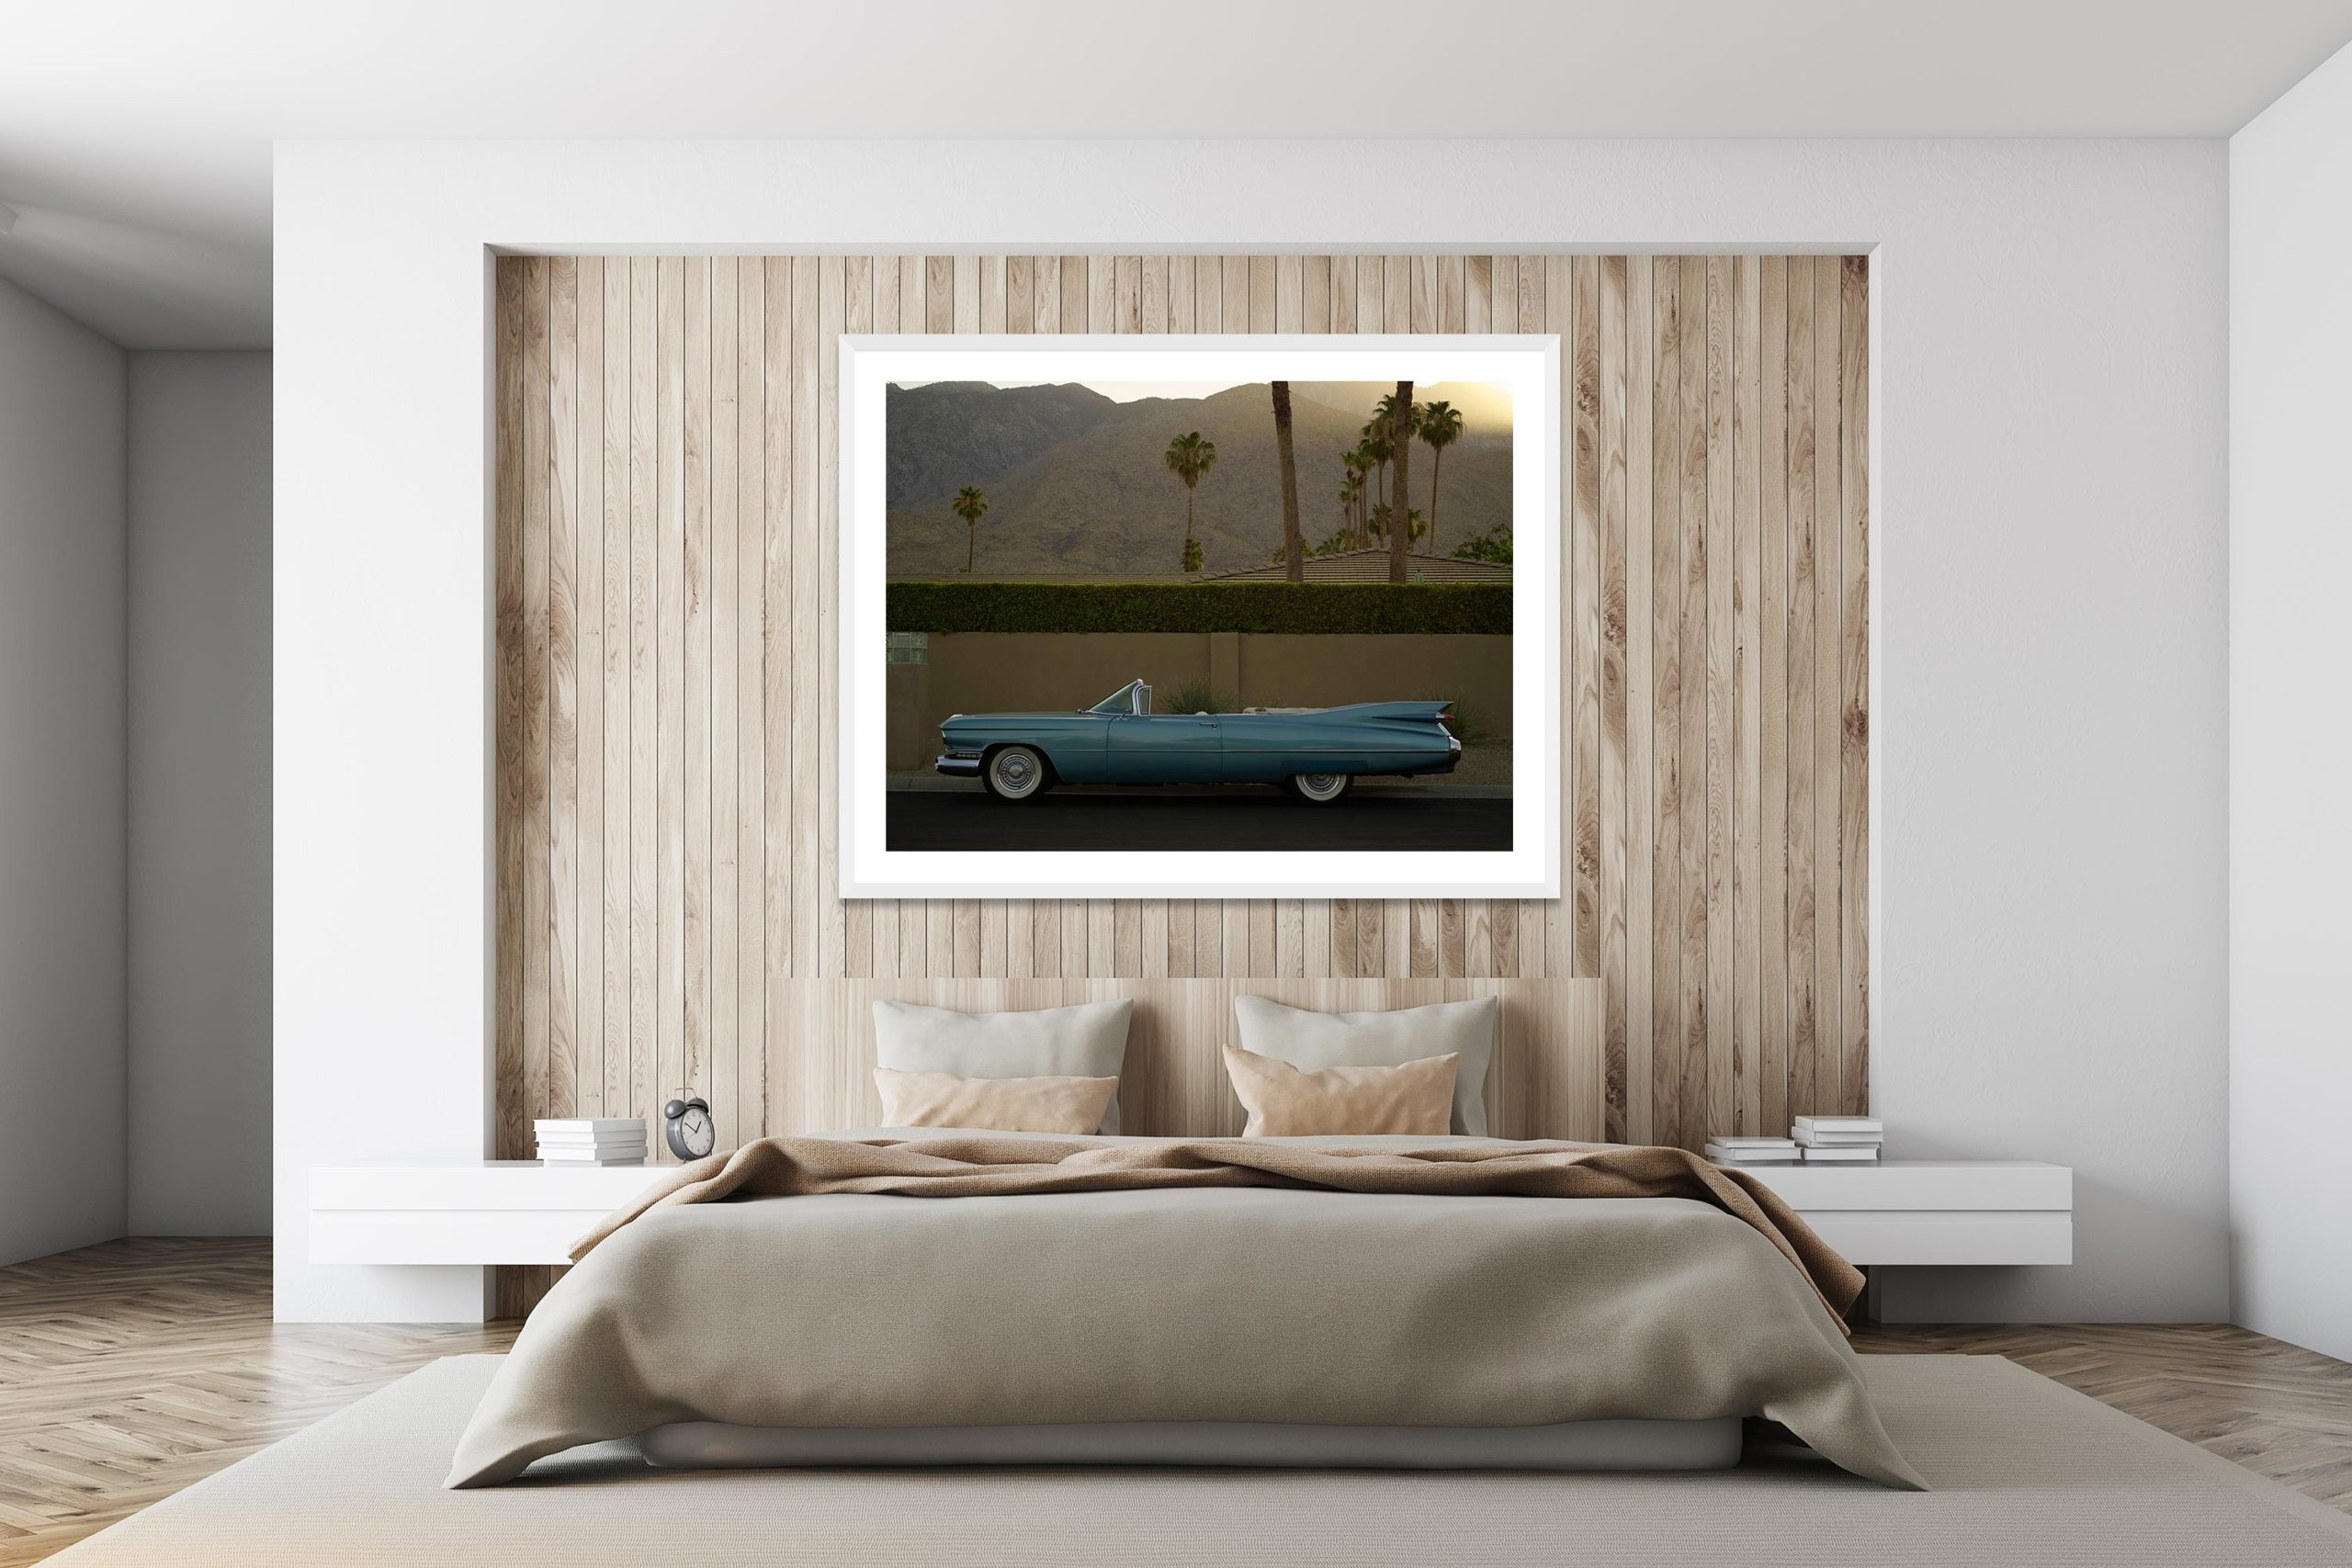 Sky Blue Cadillac - White Frame - I Heart Palm Springs Collection - Fine Art Photography by Toby Dixon